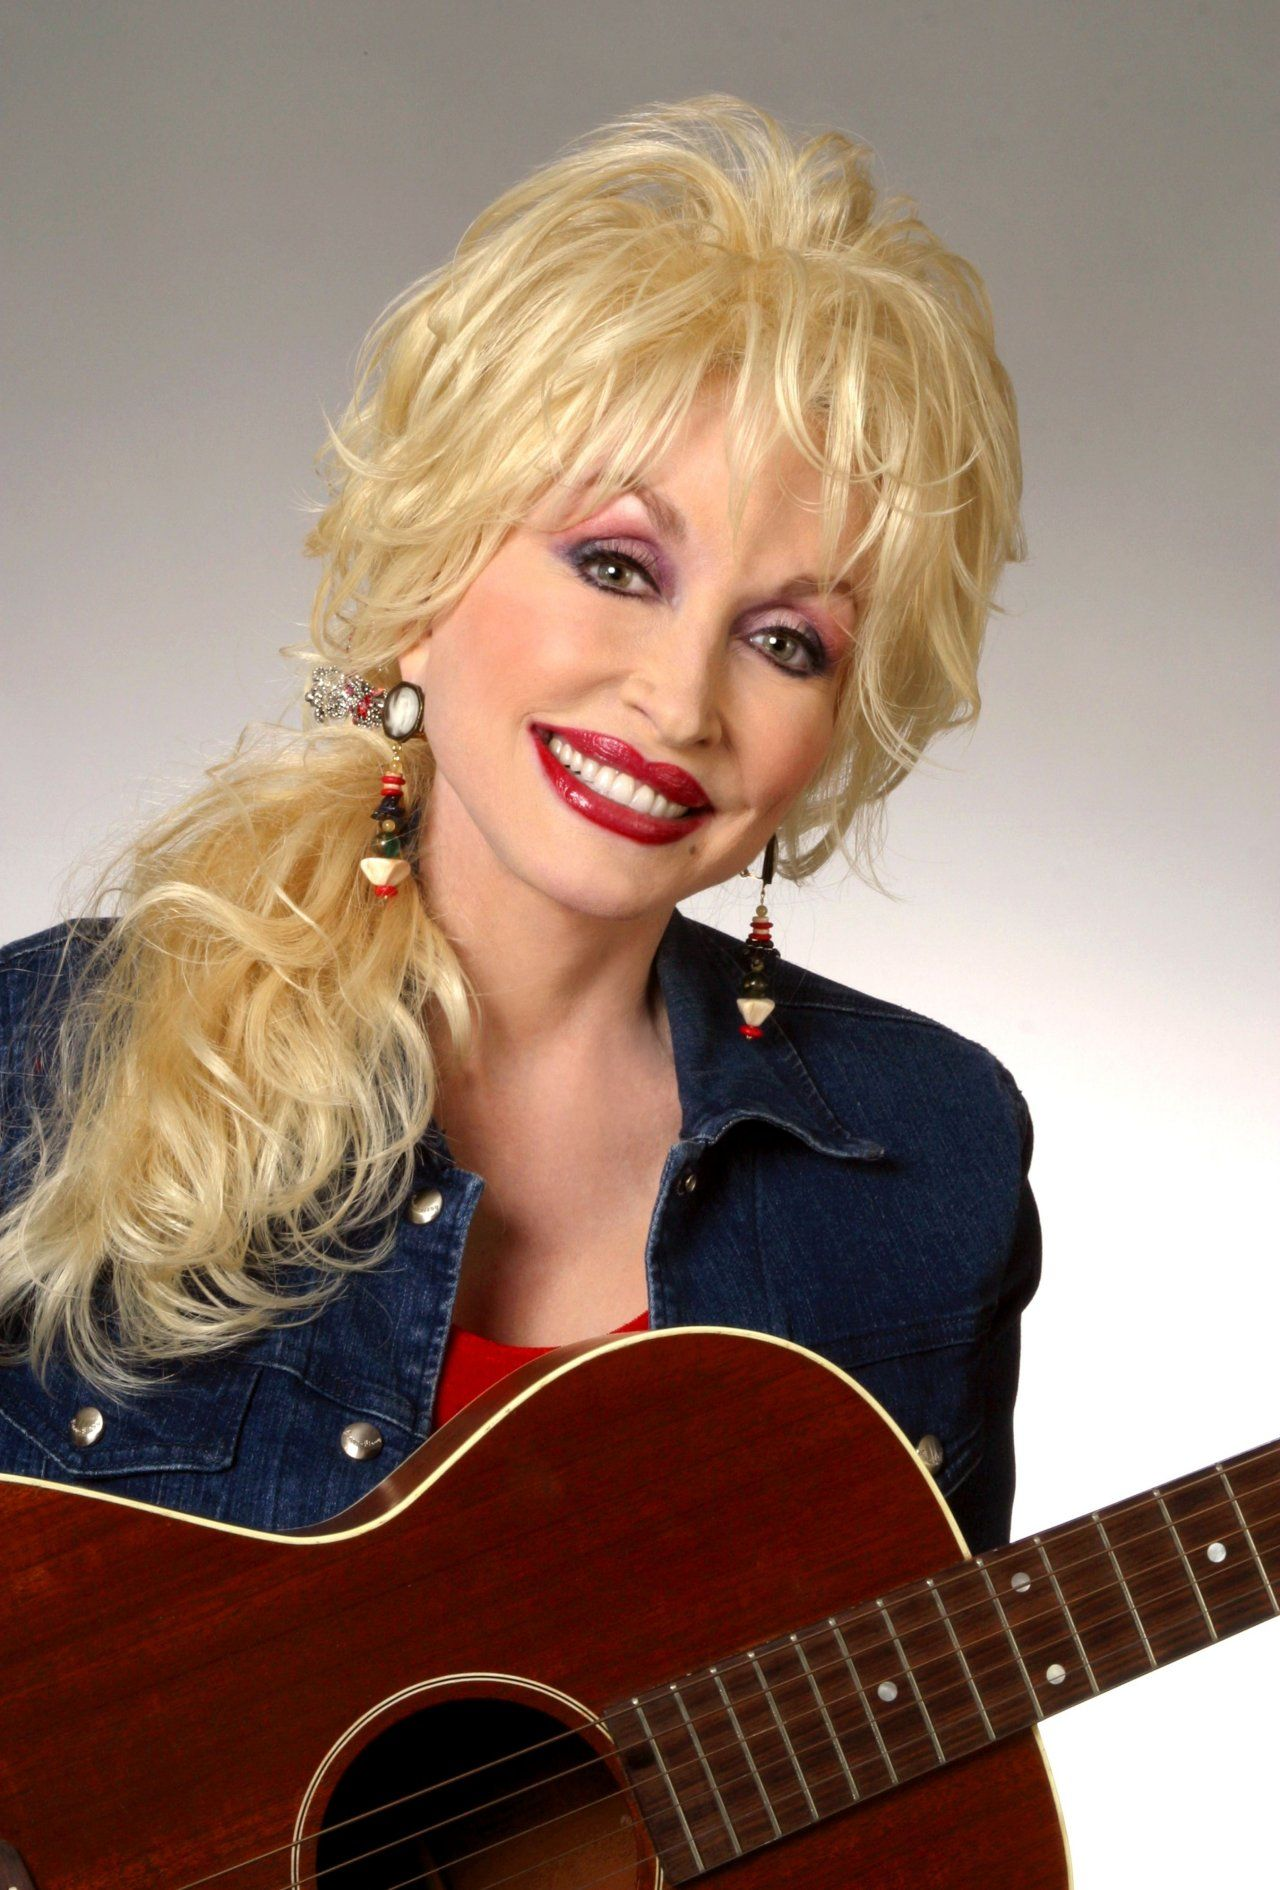 dolly parton - photo #42